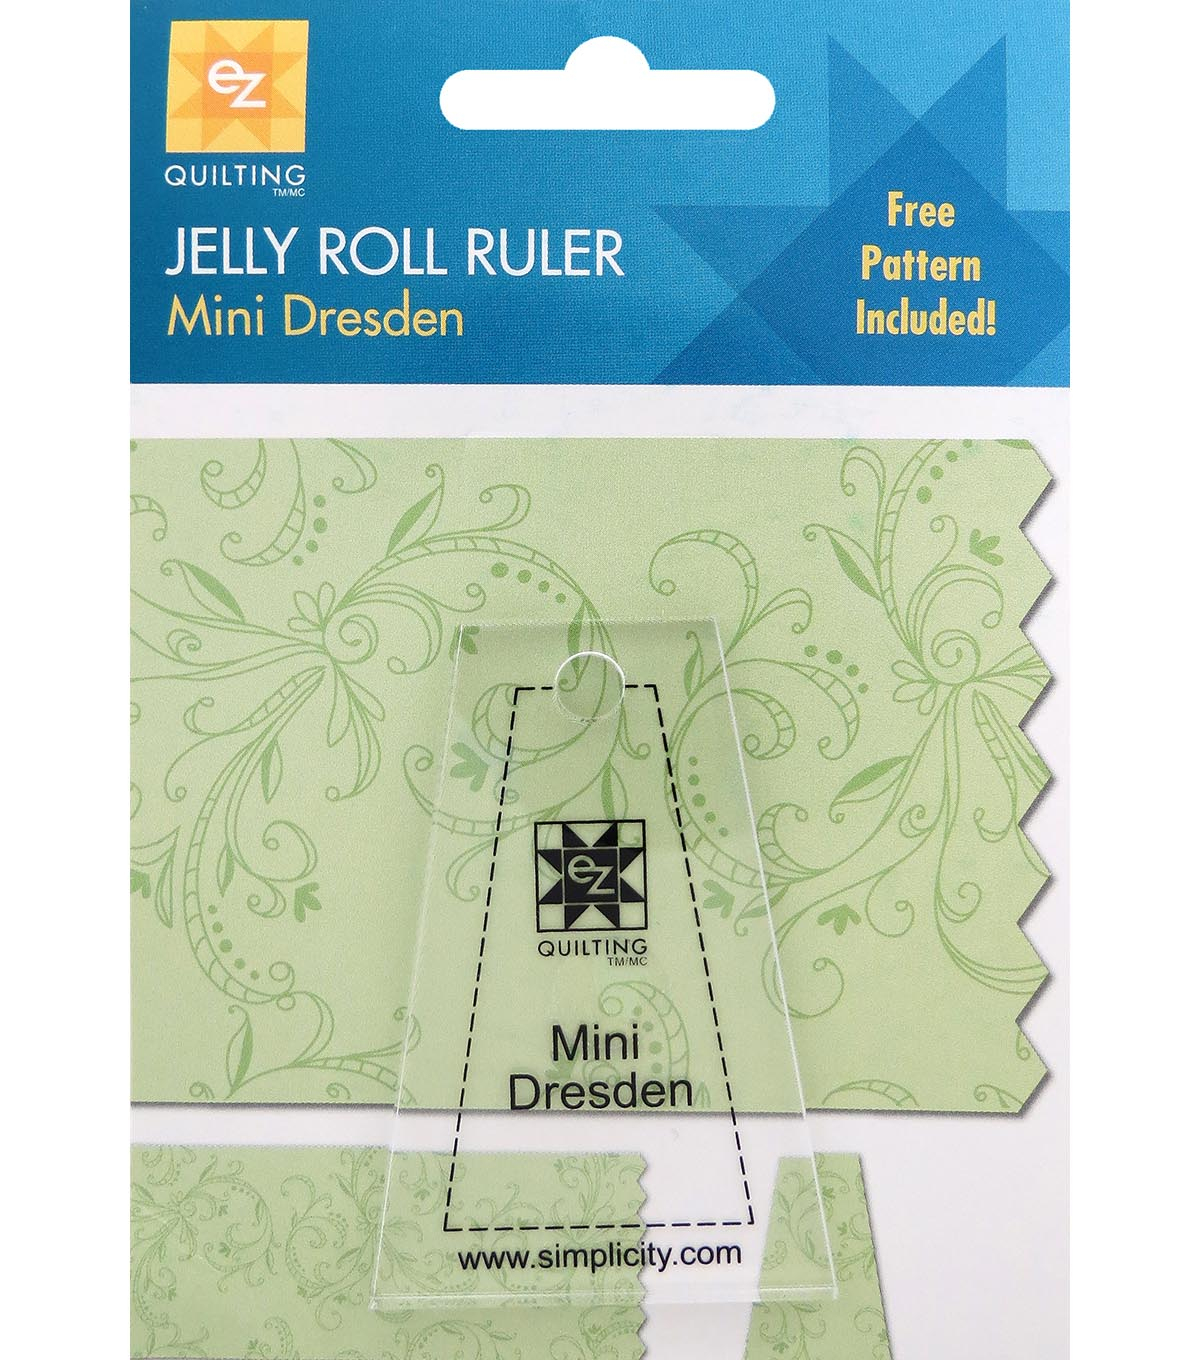 Ez Quilting Mini Dresden Jelly Roll Ruler